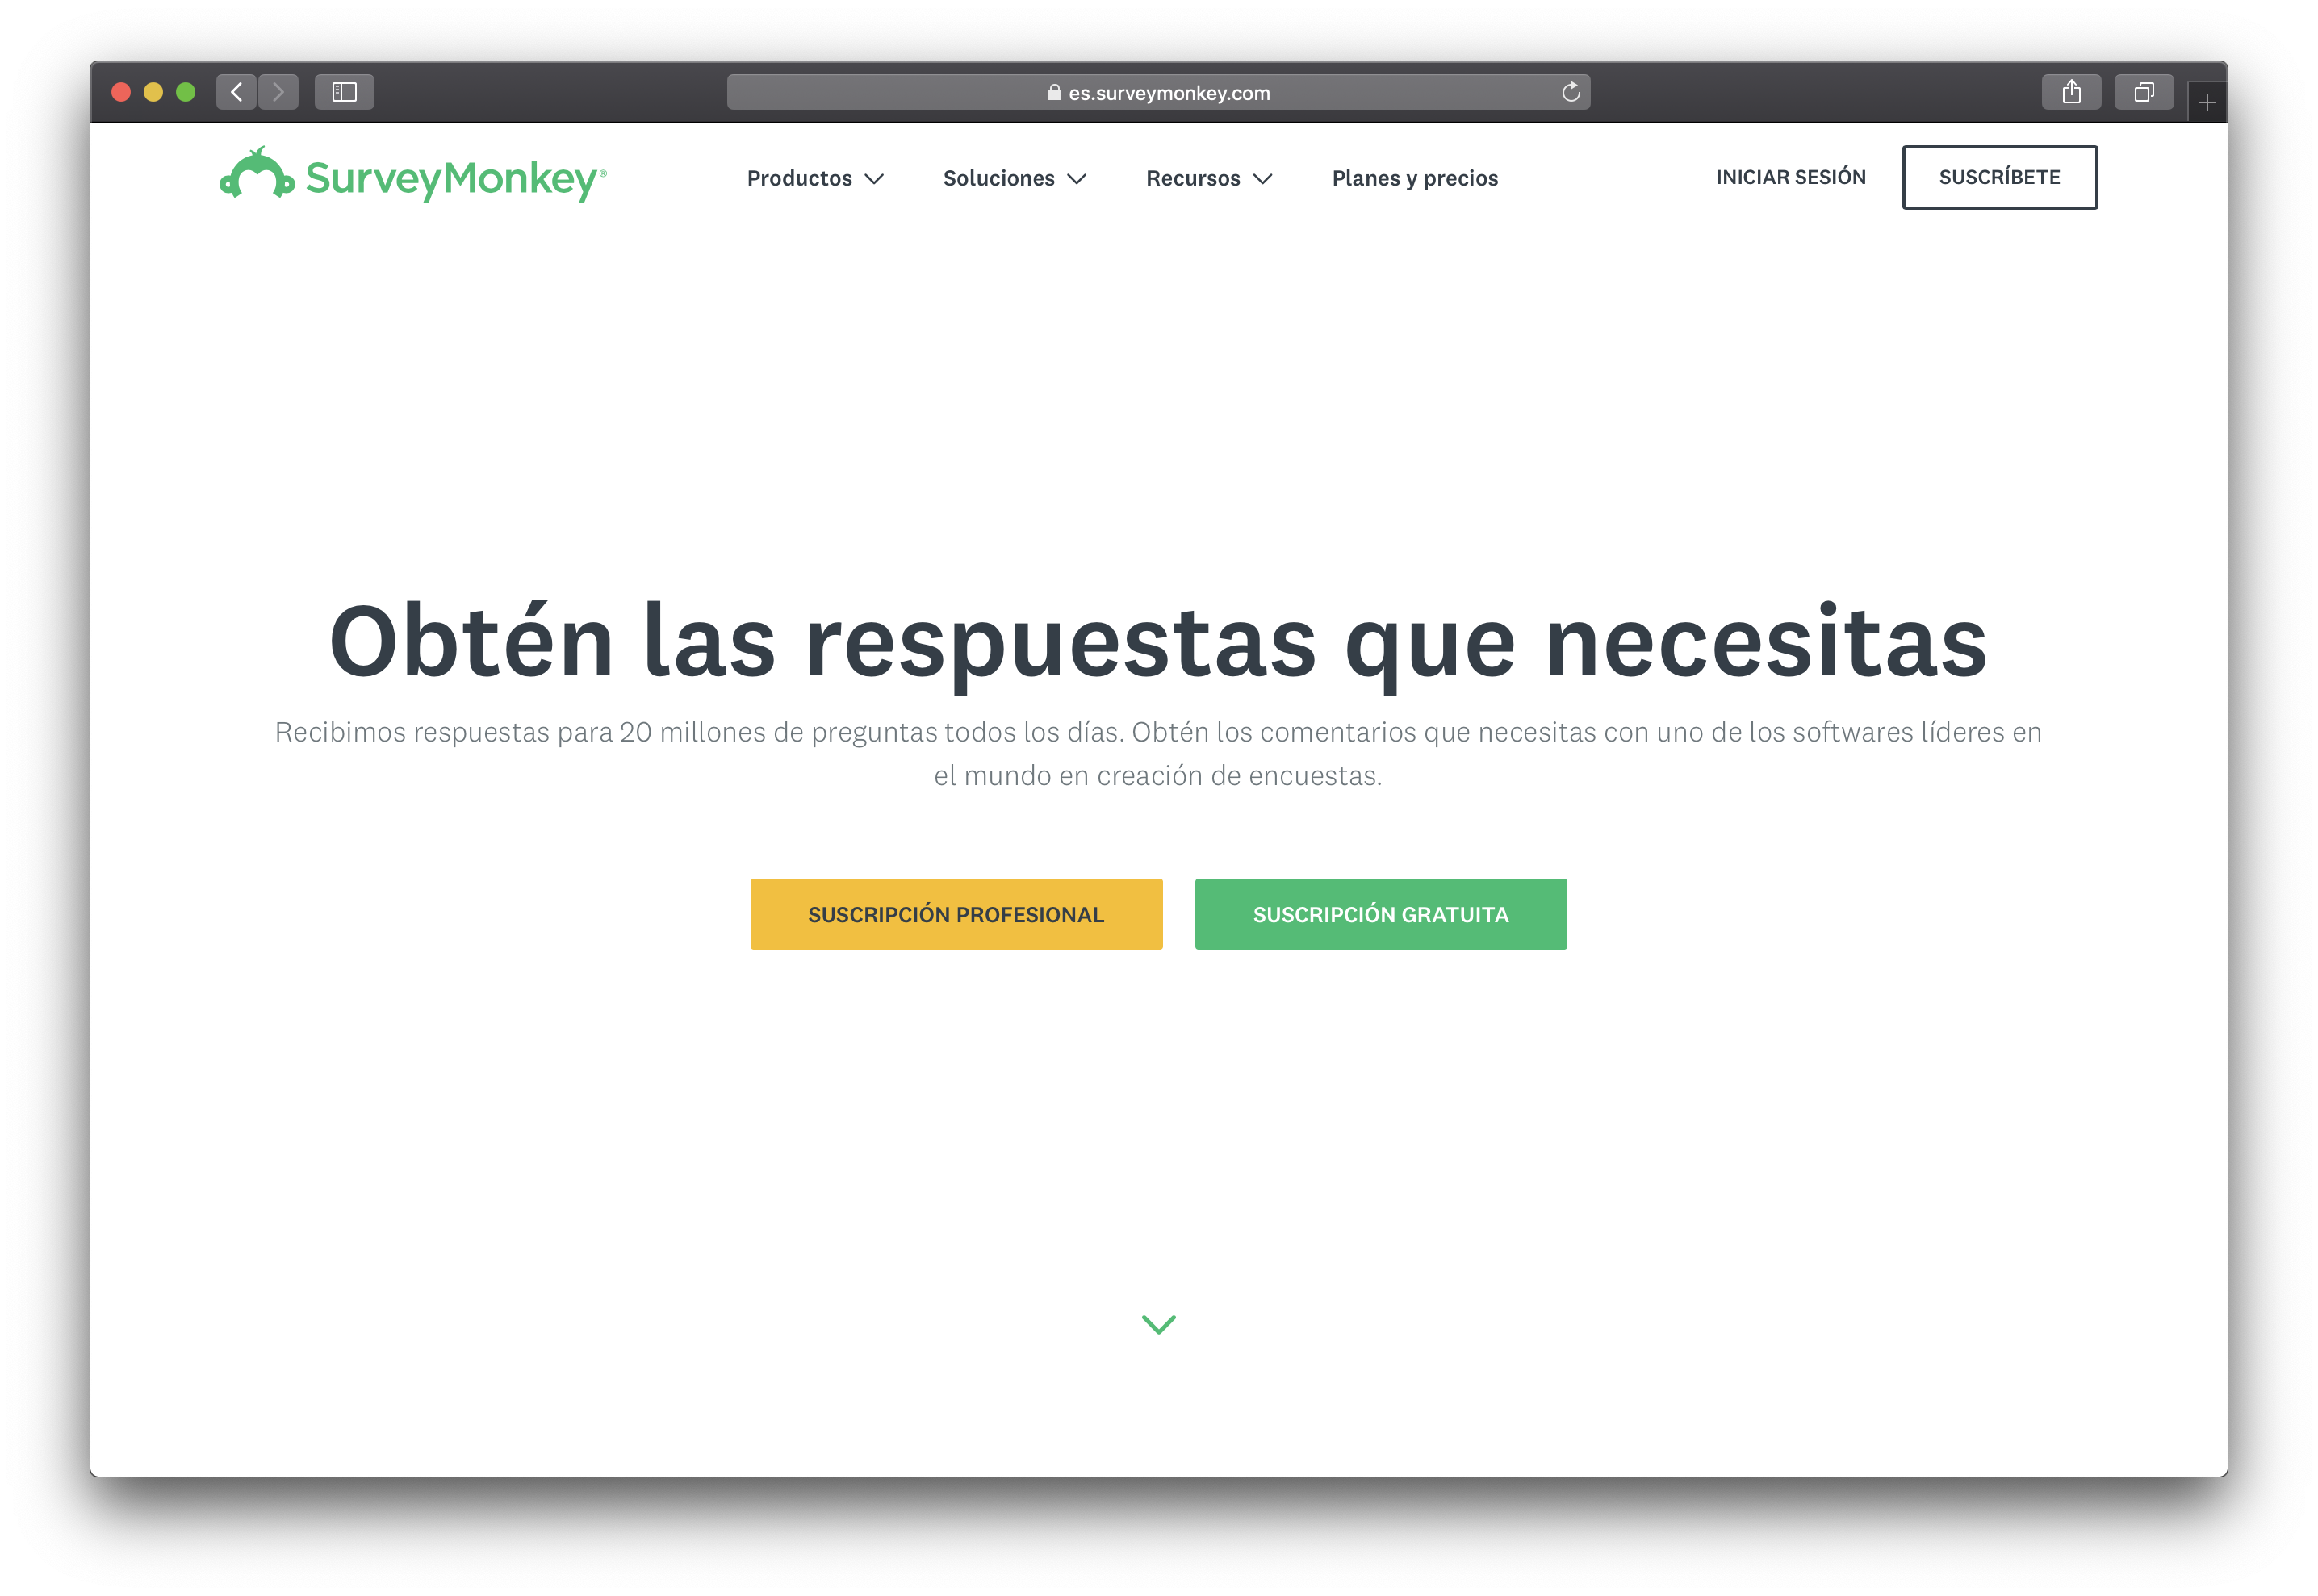 survey-monkey-integraciones-marketing-hubspot